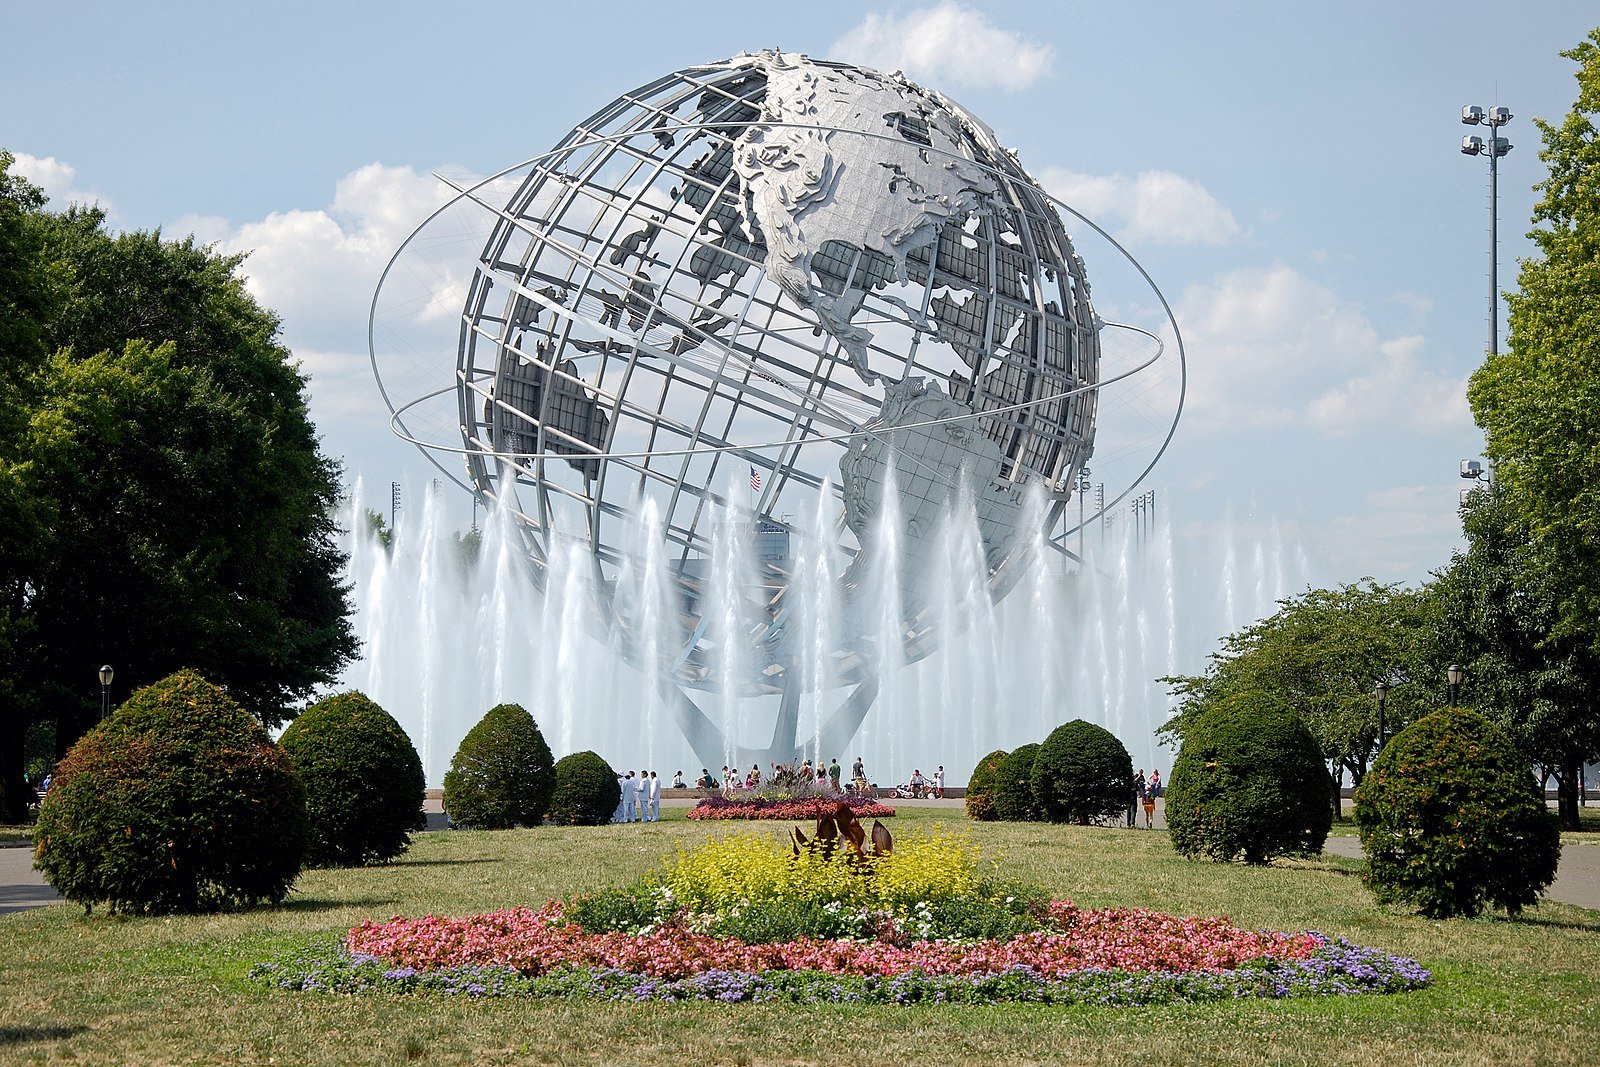 Sphere Flushing-Meadows Corona Park